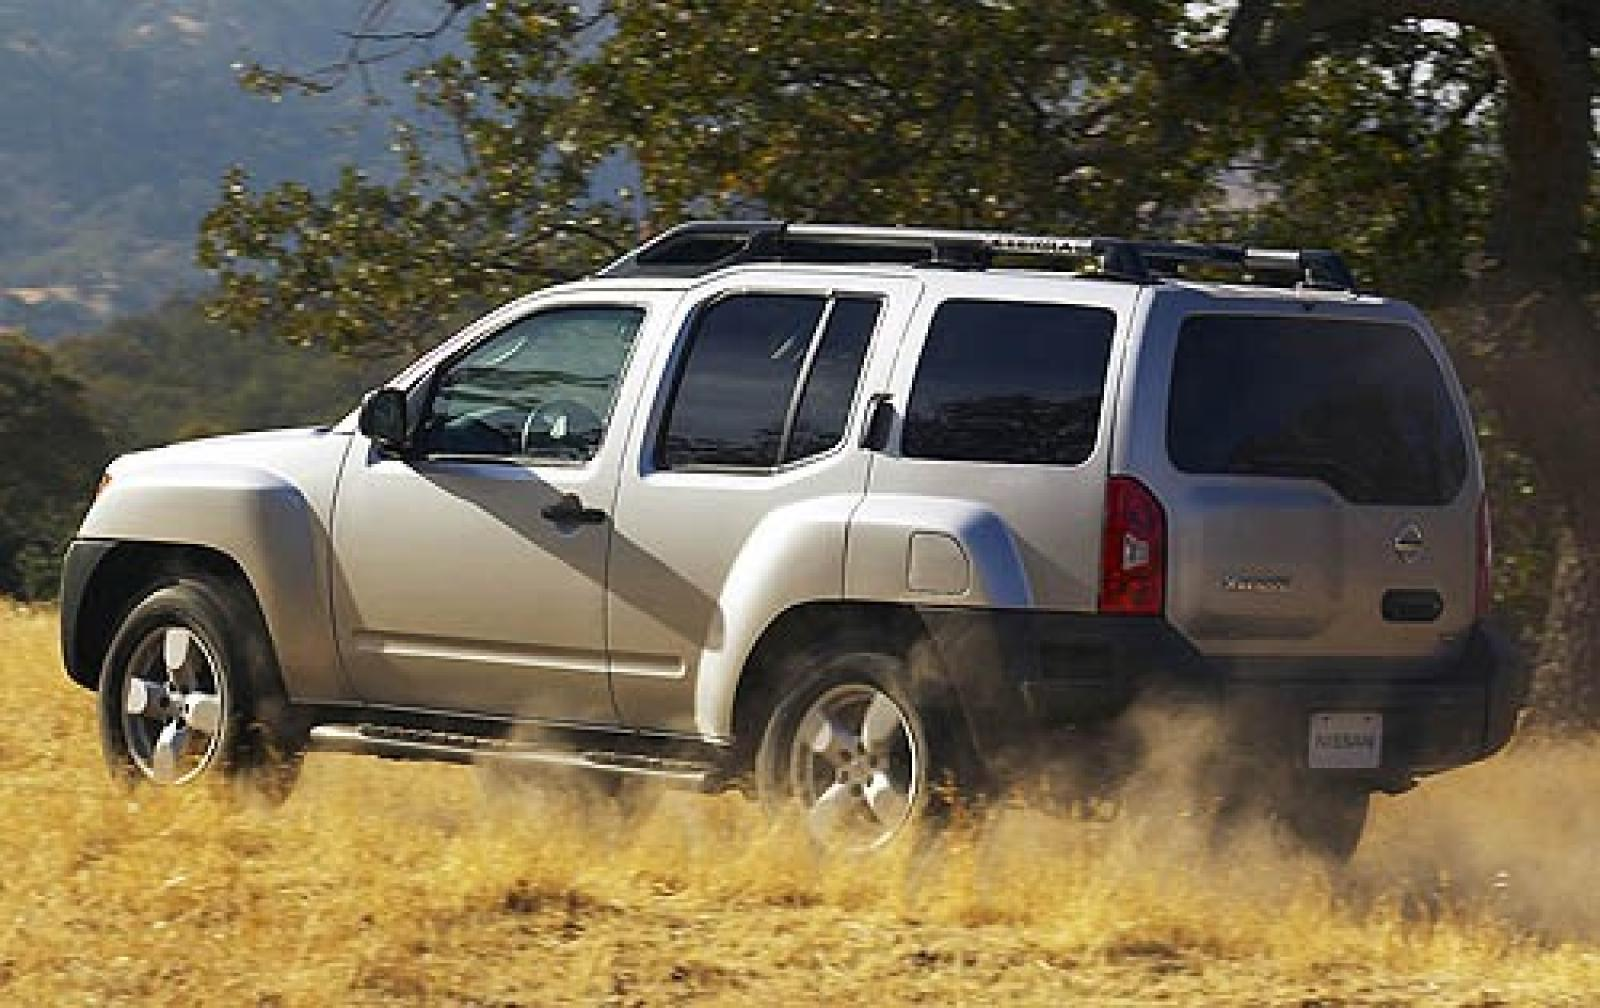 2006 nissan xterra information and photos zombiedrive. Black Bedroom Furniture Sets. Home Design Ideas